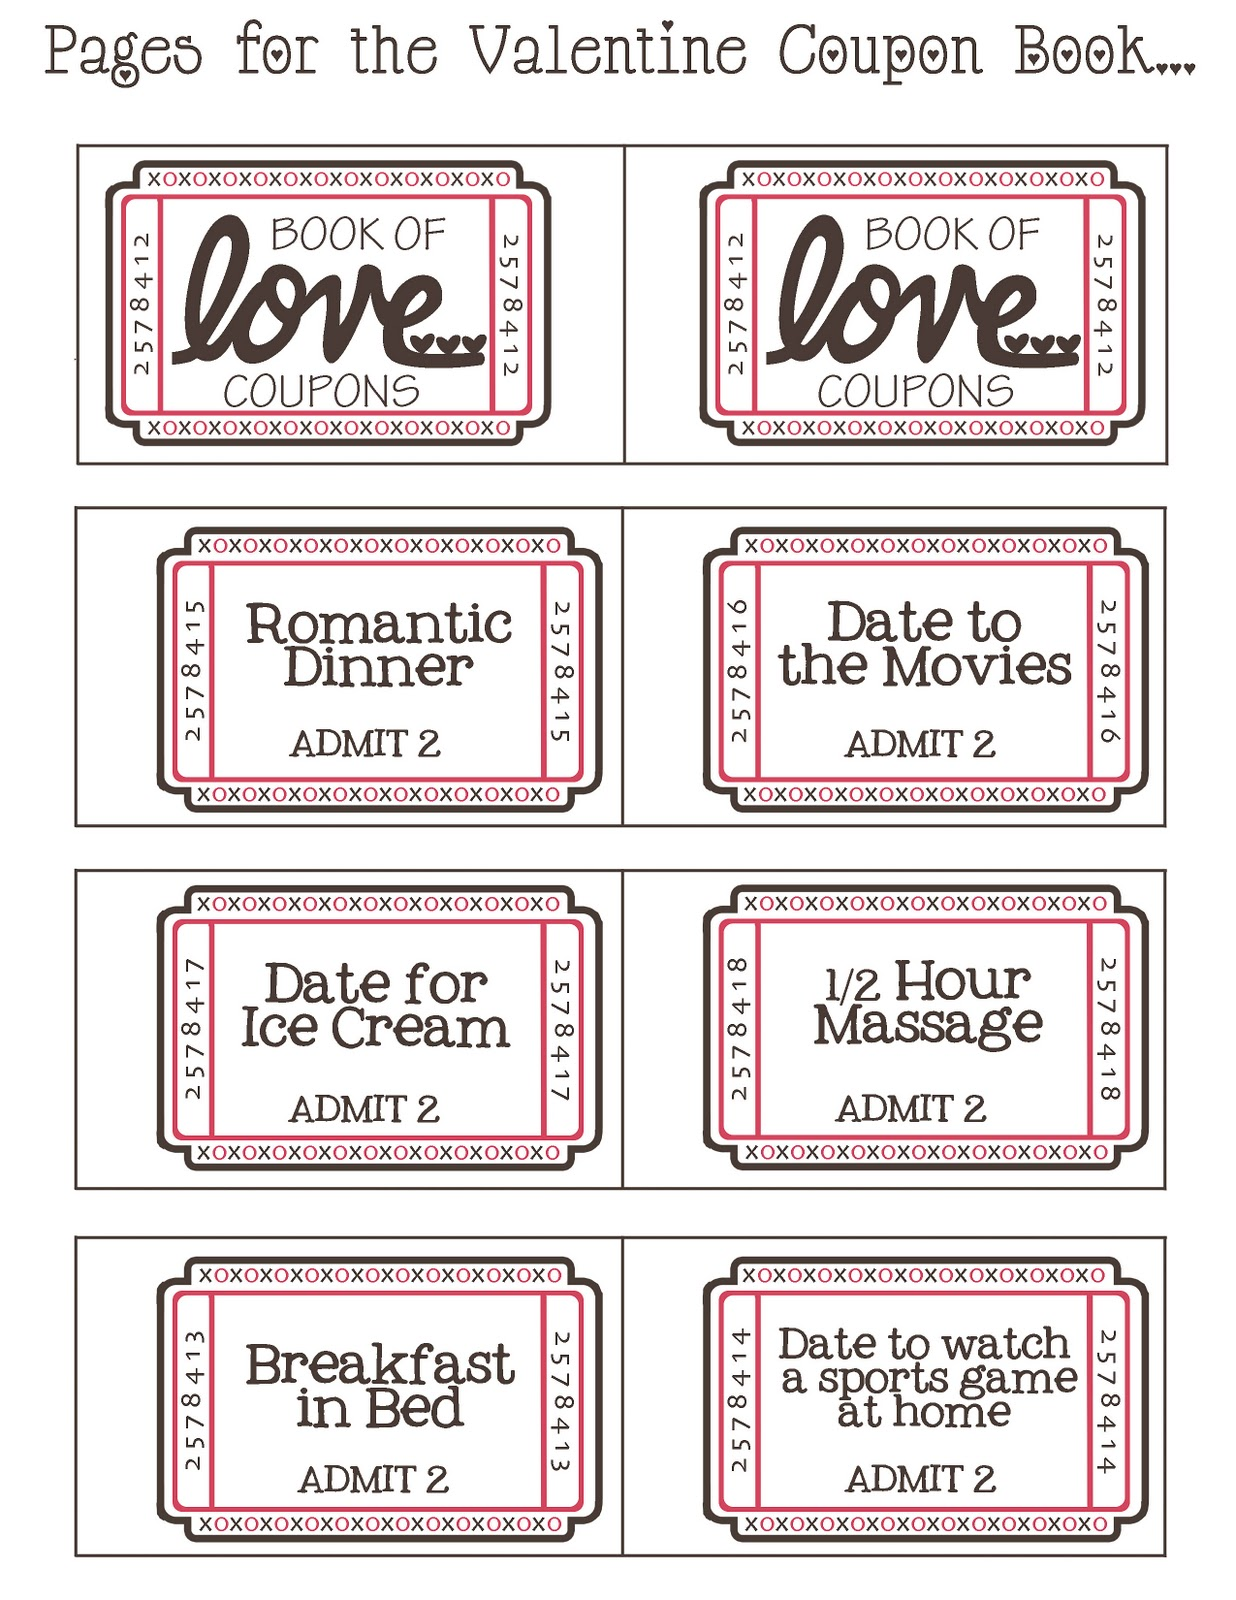 photograph relating to Free Printable Kinky Coupons called Cost-free printable naughty valentines working day discount codes